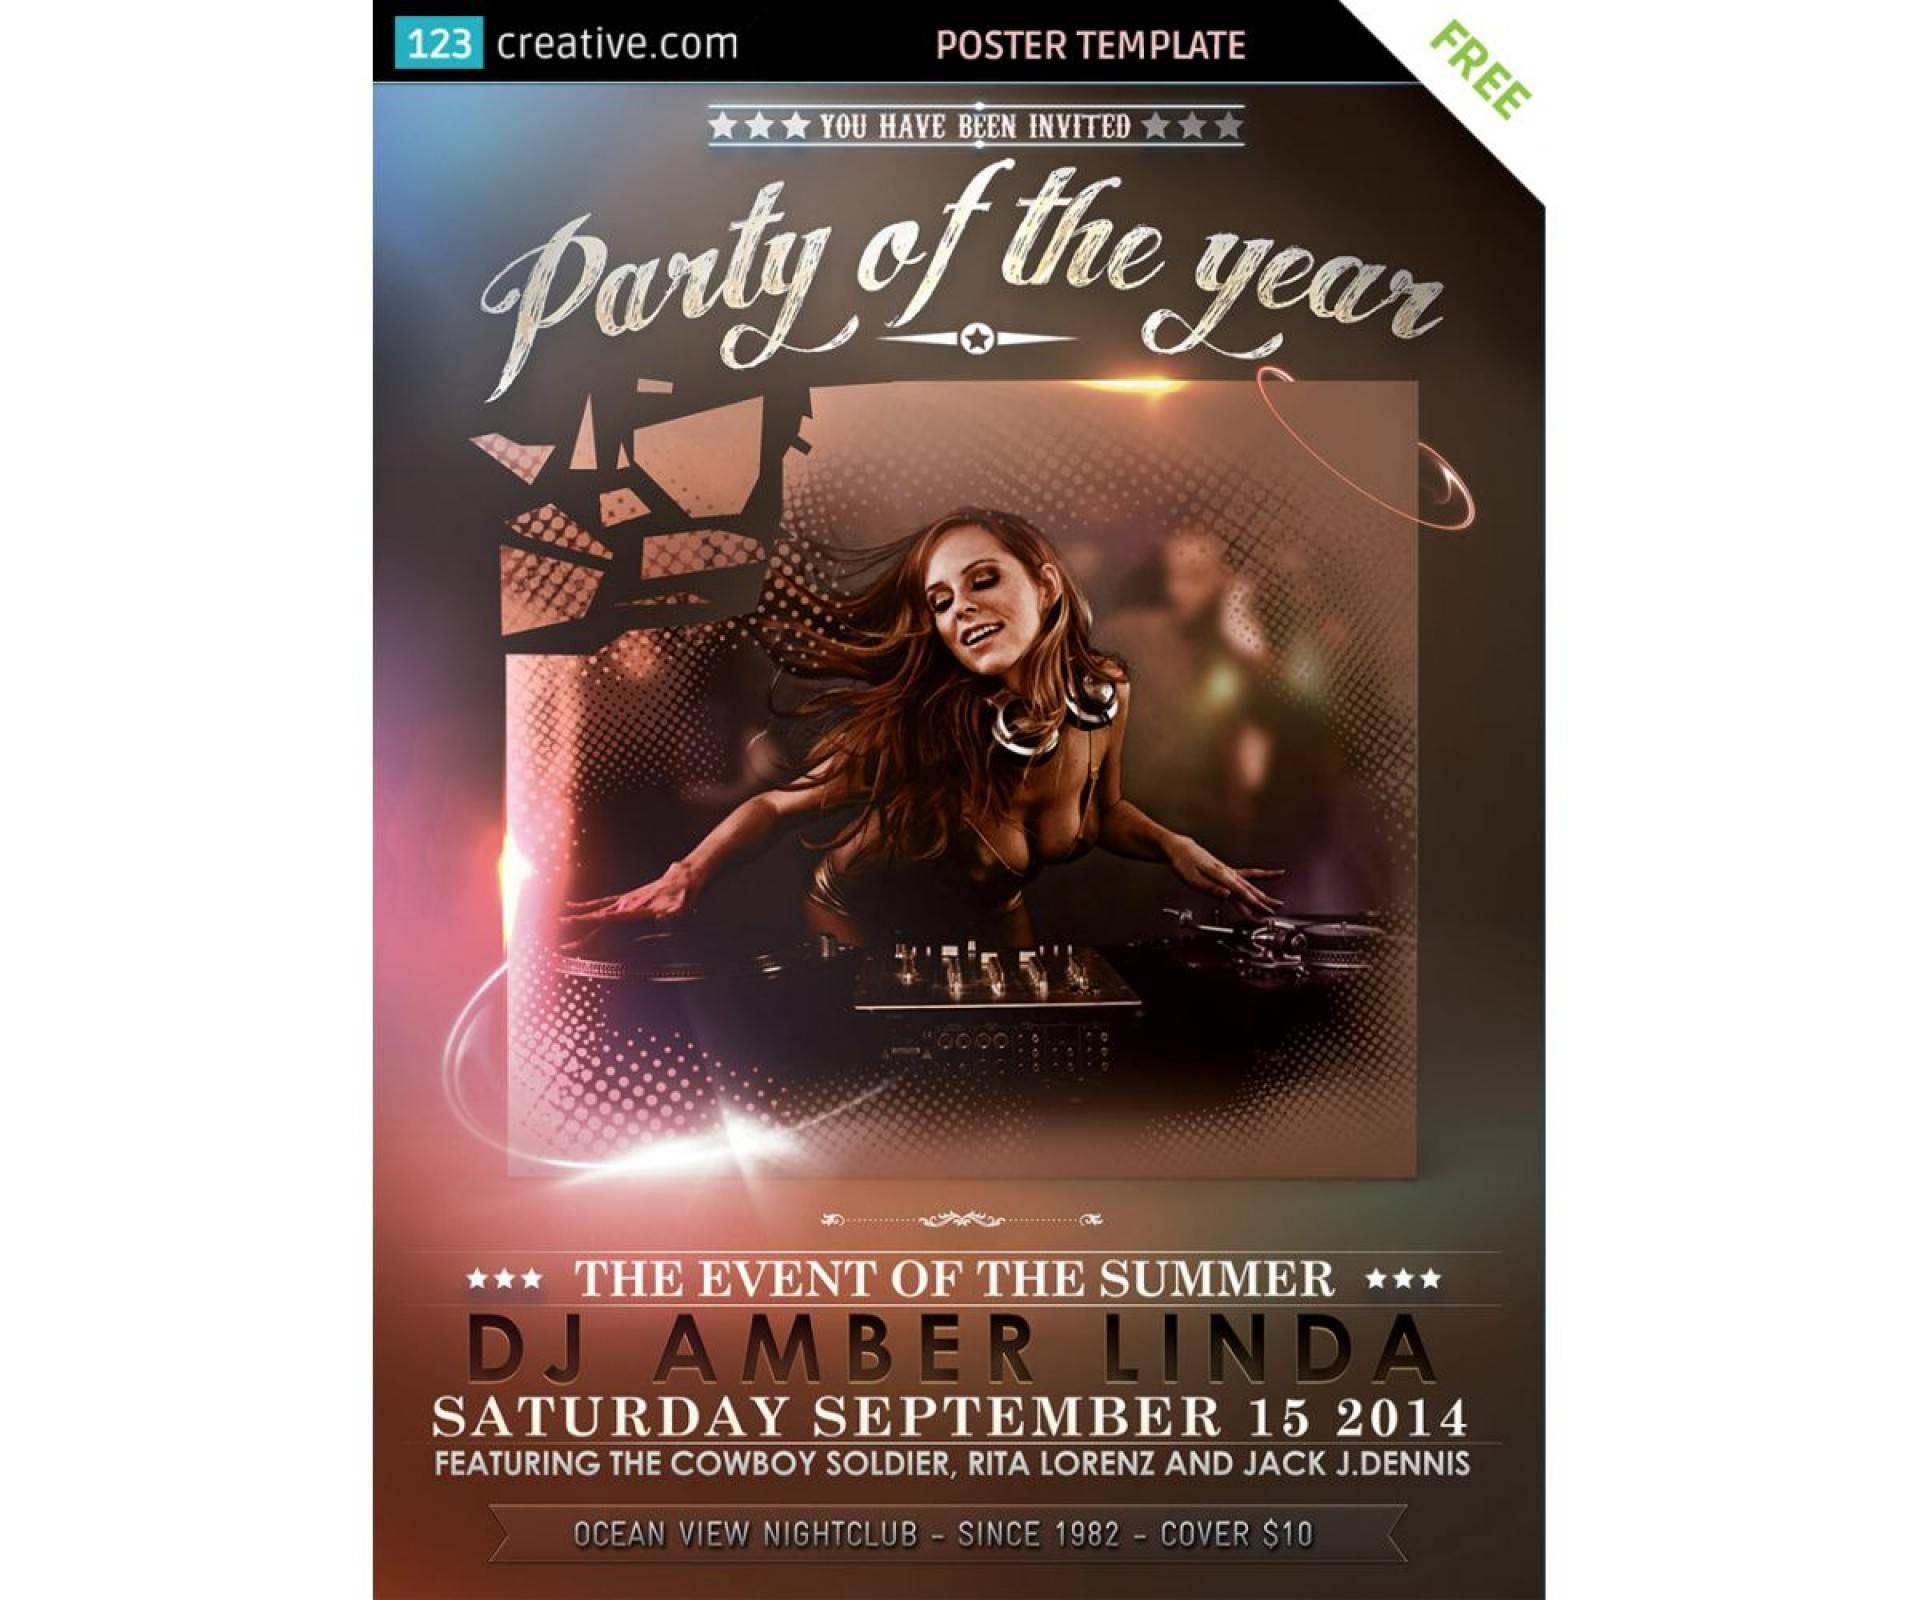 009 Excellent Party Event Flyer Template Free Download Concept 1920